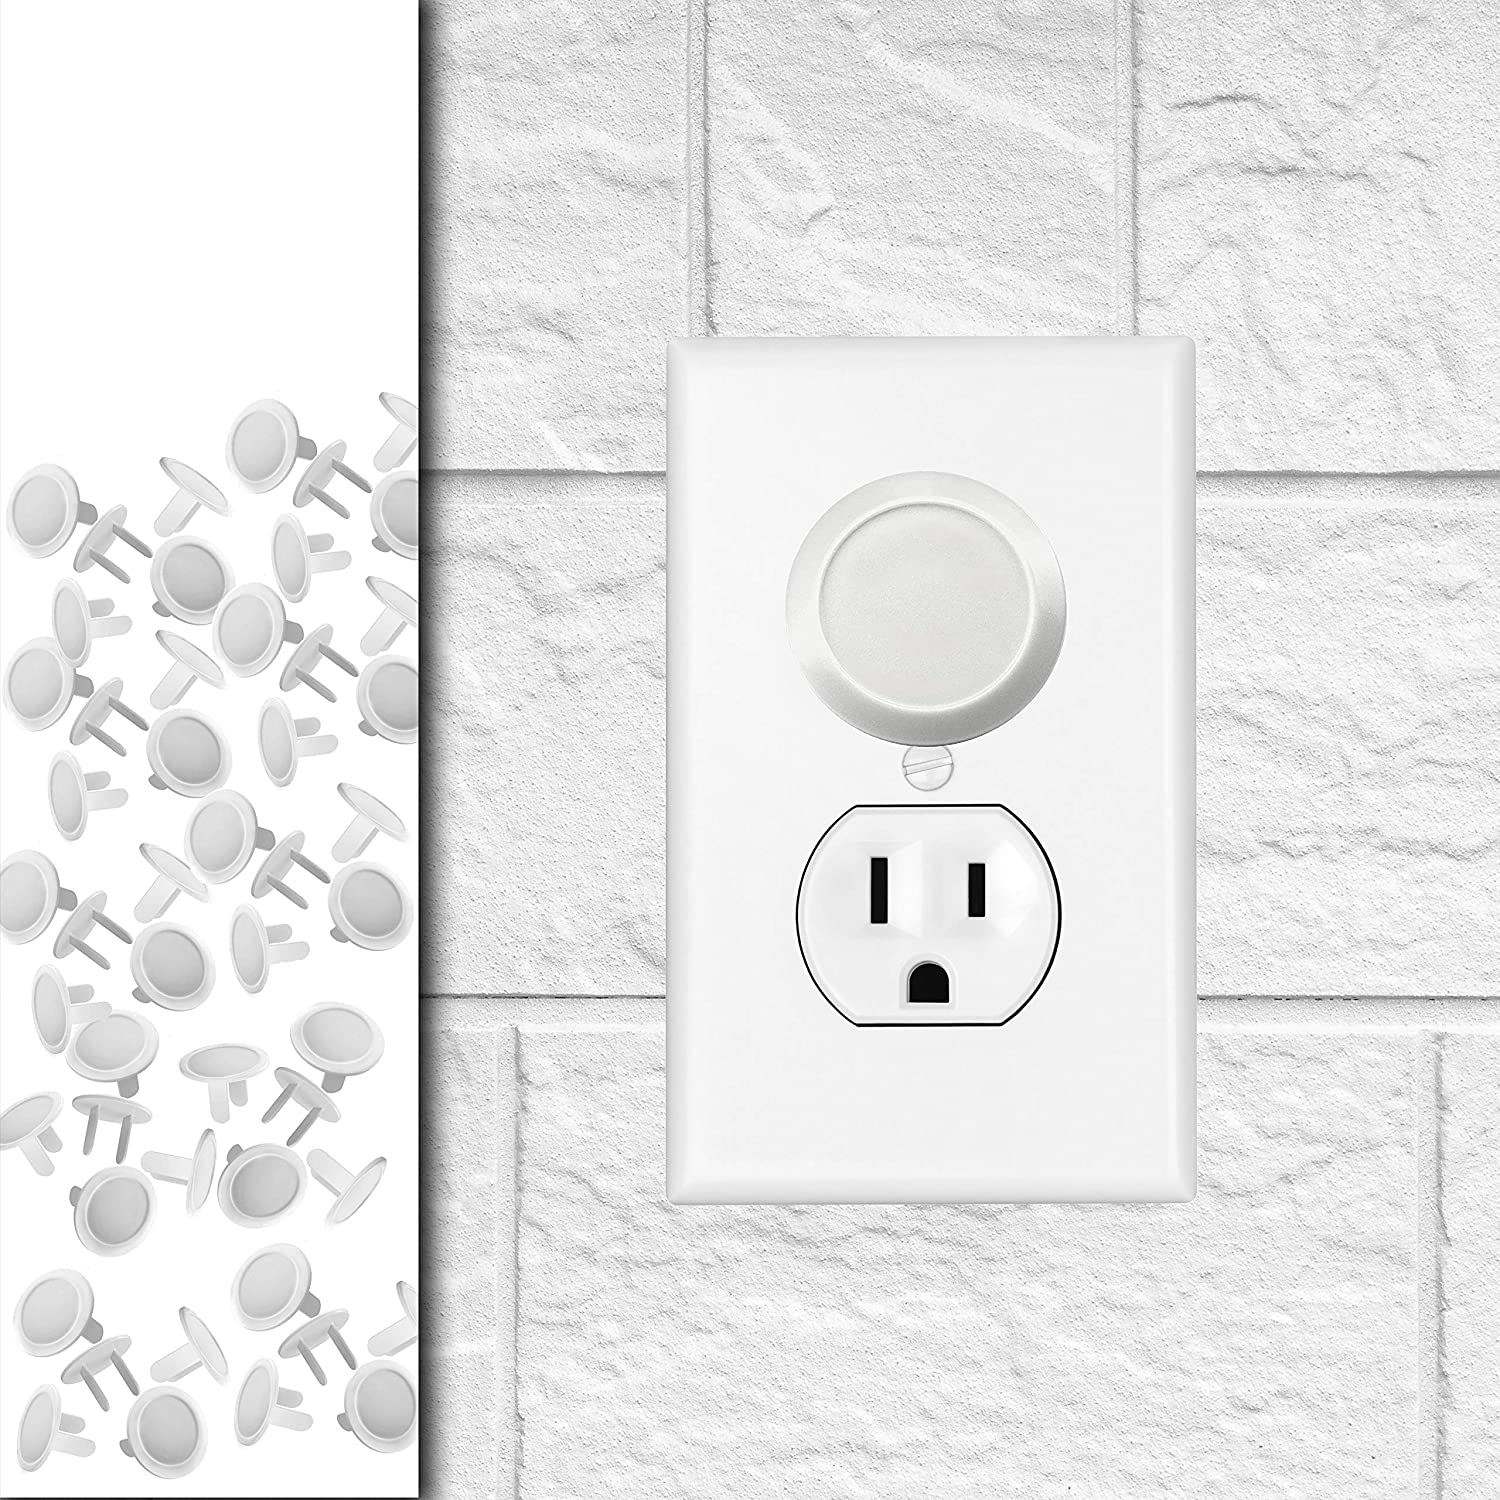 50 Pack - Outlet Plug Baby Safety Covers - Protect Little Kids from Electrical Danger with Child Proof Socket Caps - White - Driddle